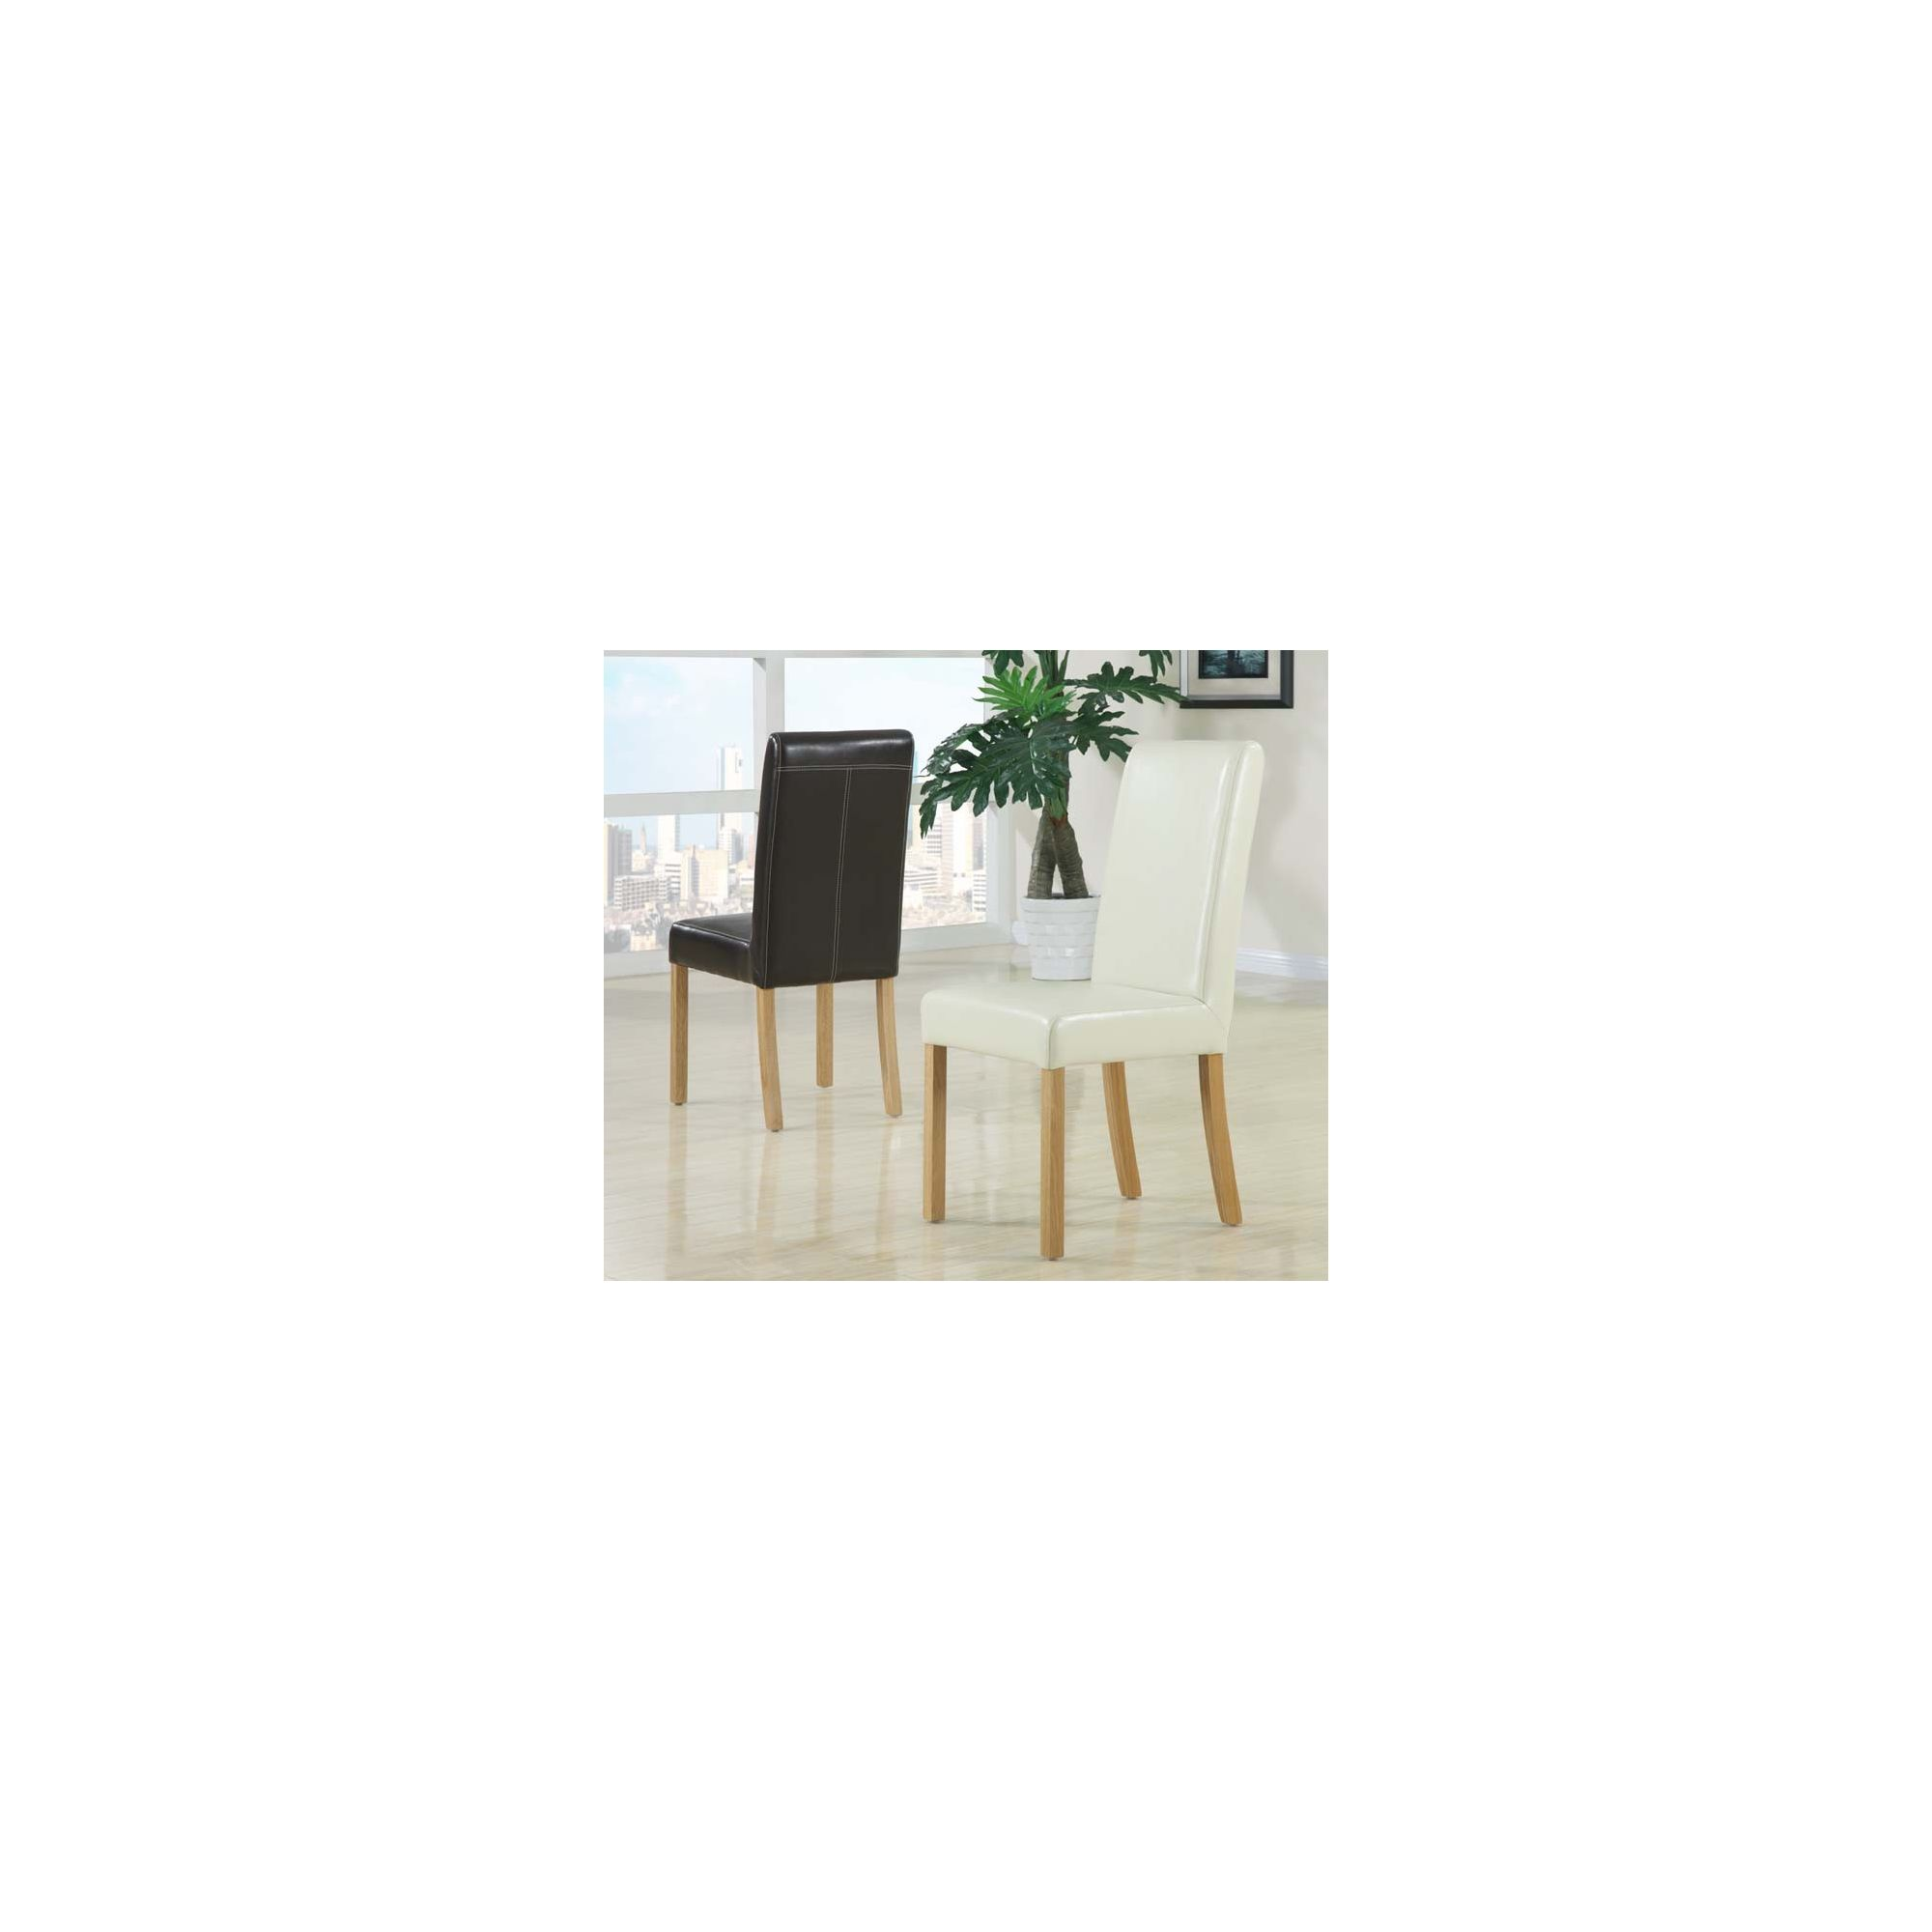 Hawkshead Barcelona Leather Dining Chair with Dark Brown Seat